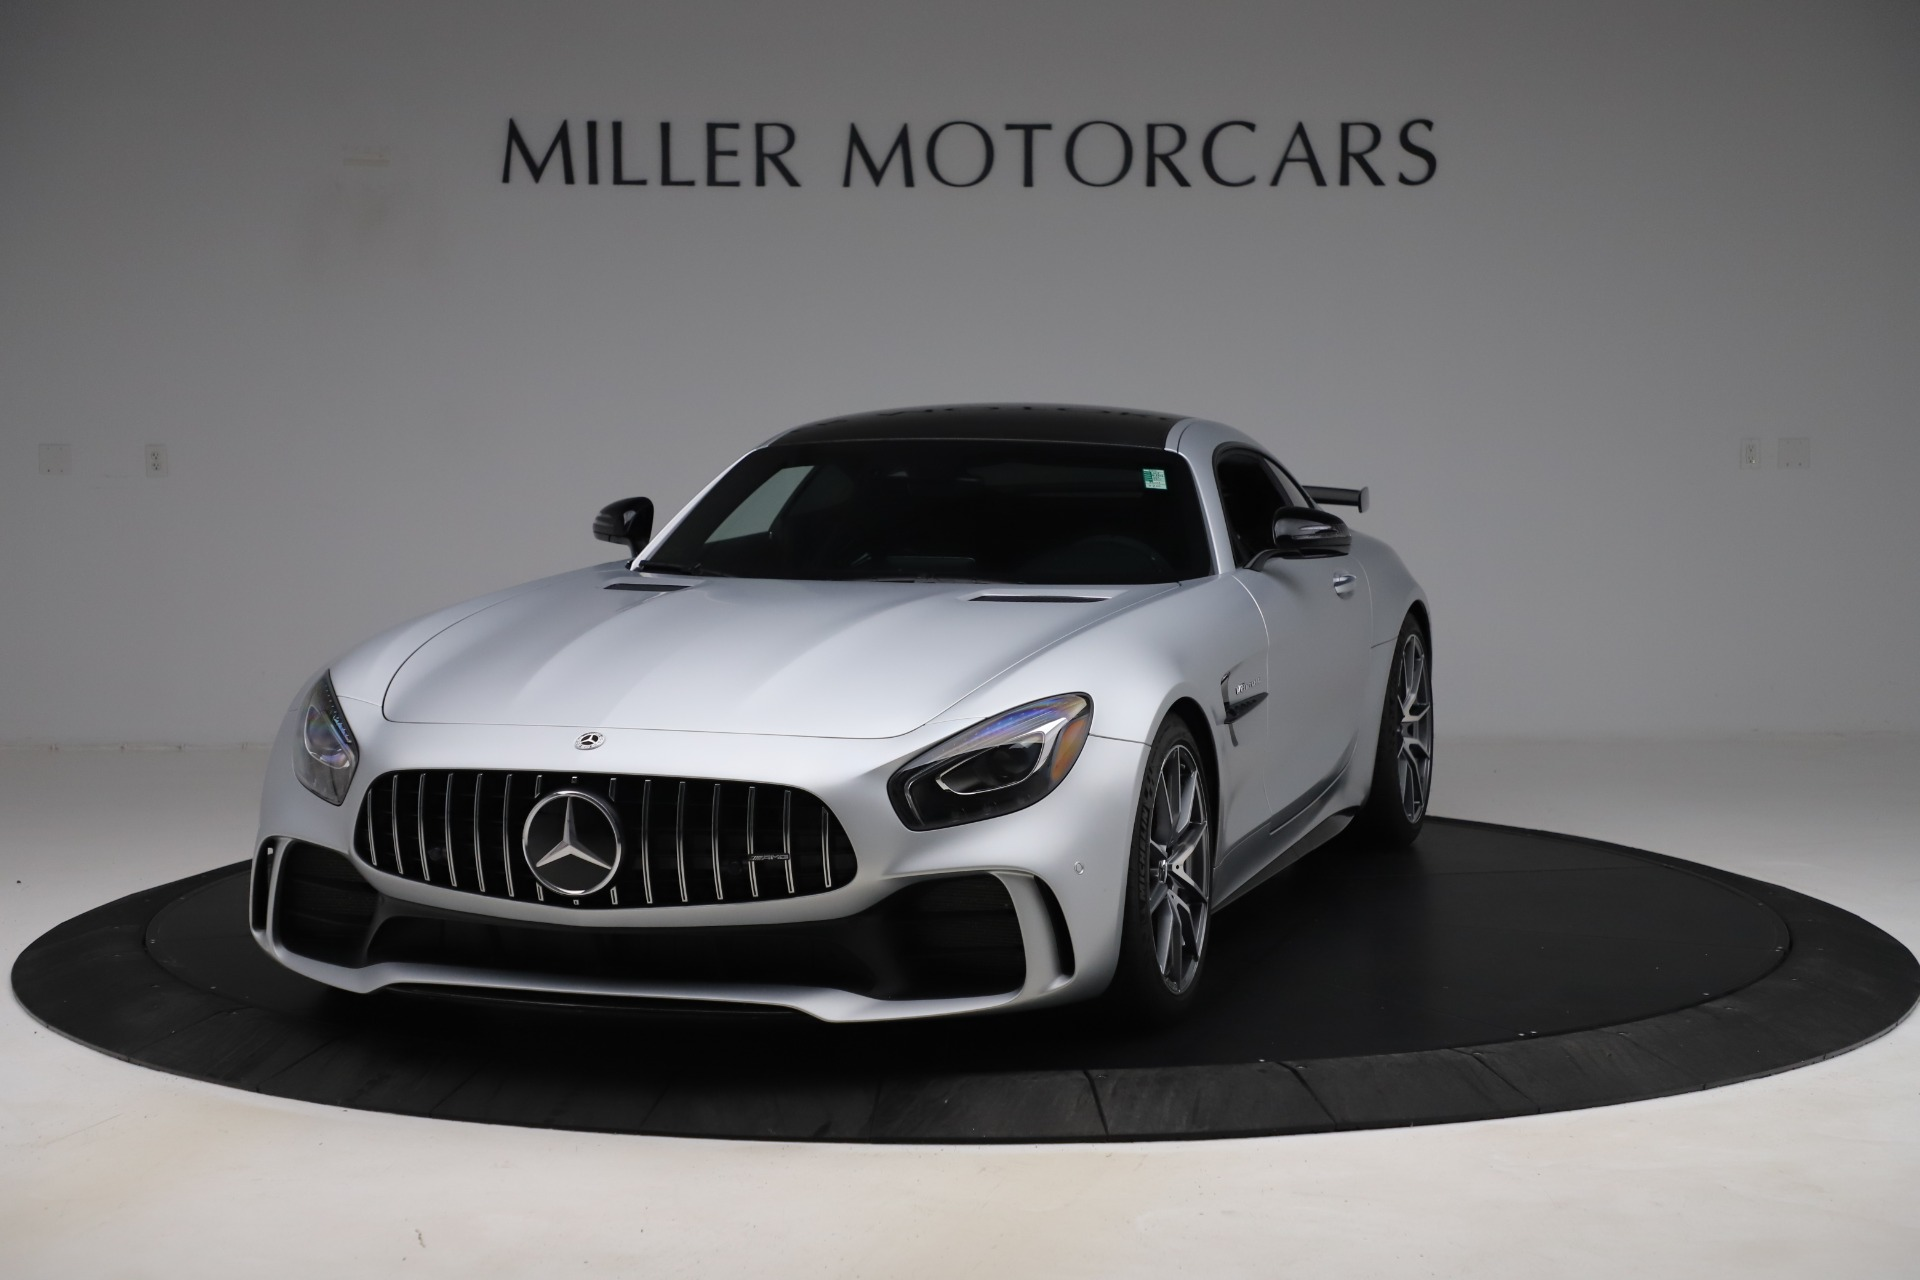 Used 2018 Mercedes-Benz AMG GT R for sale Sold at Alfa Romeo of Westport in Westport CT 06880 1